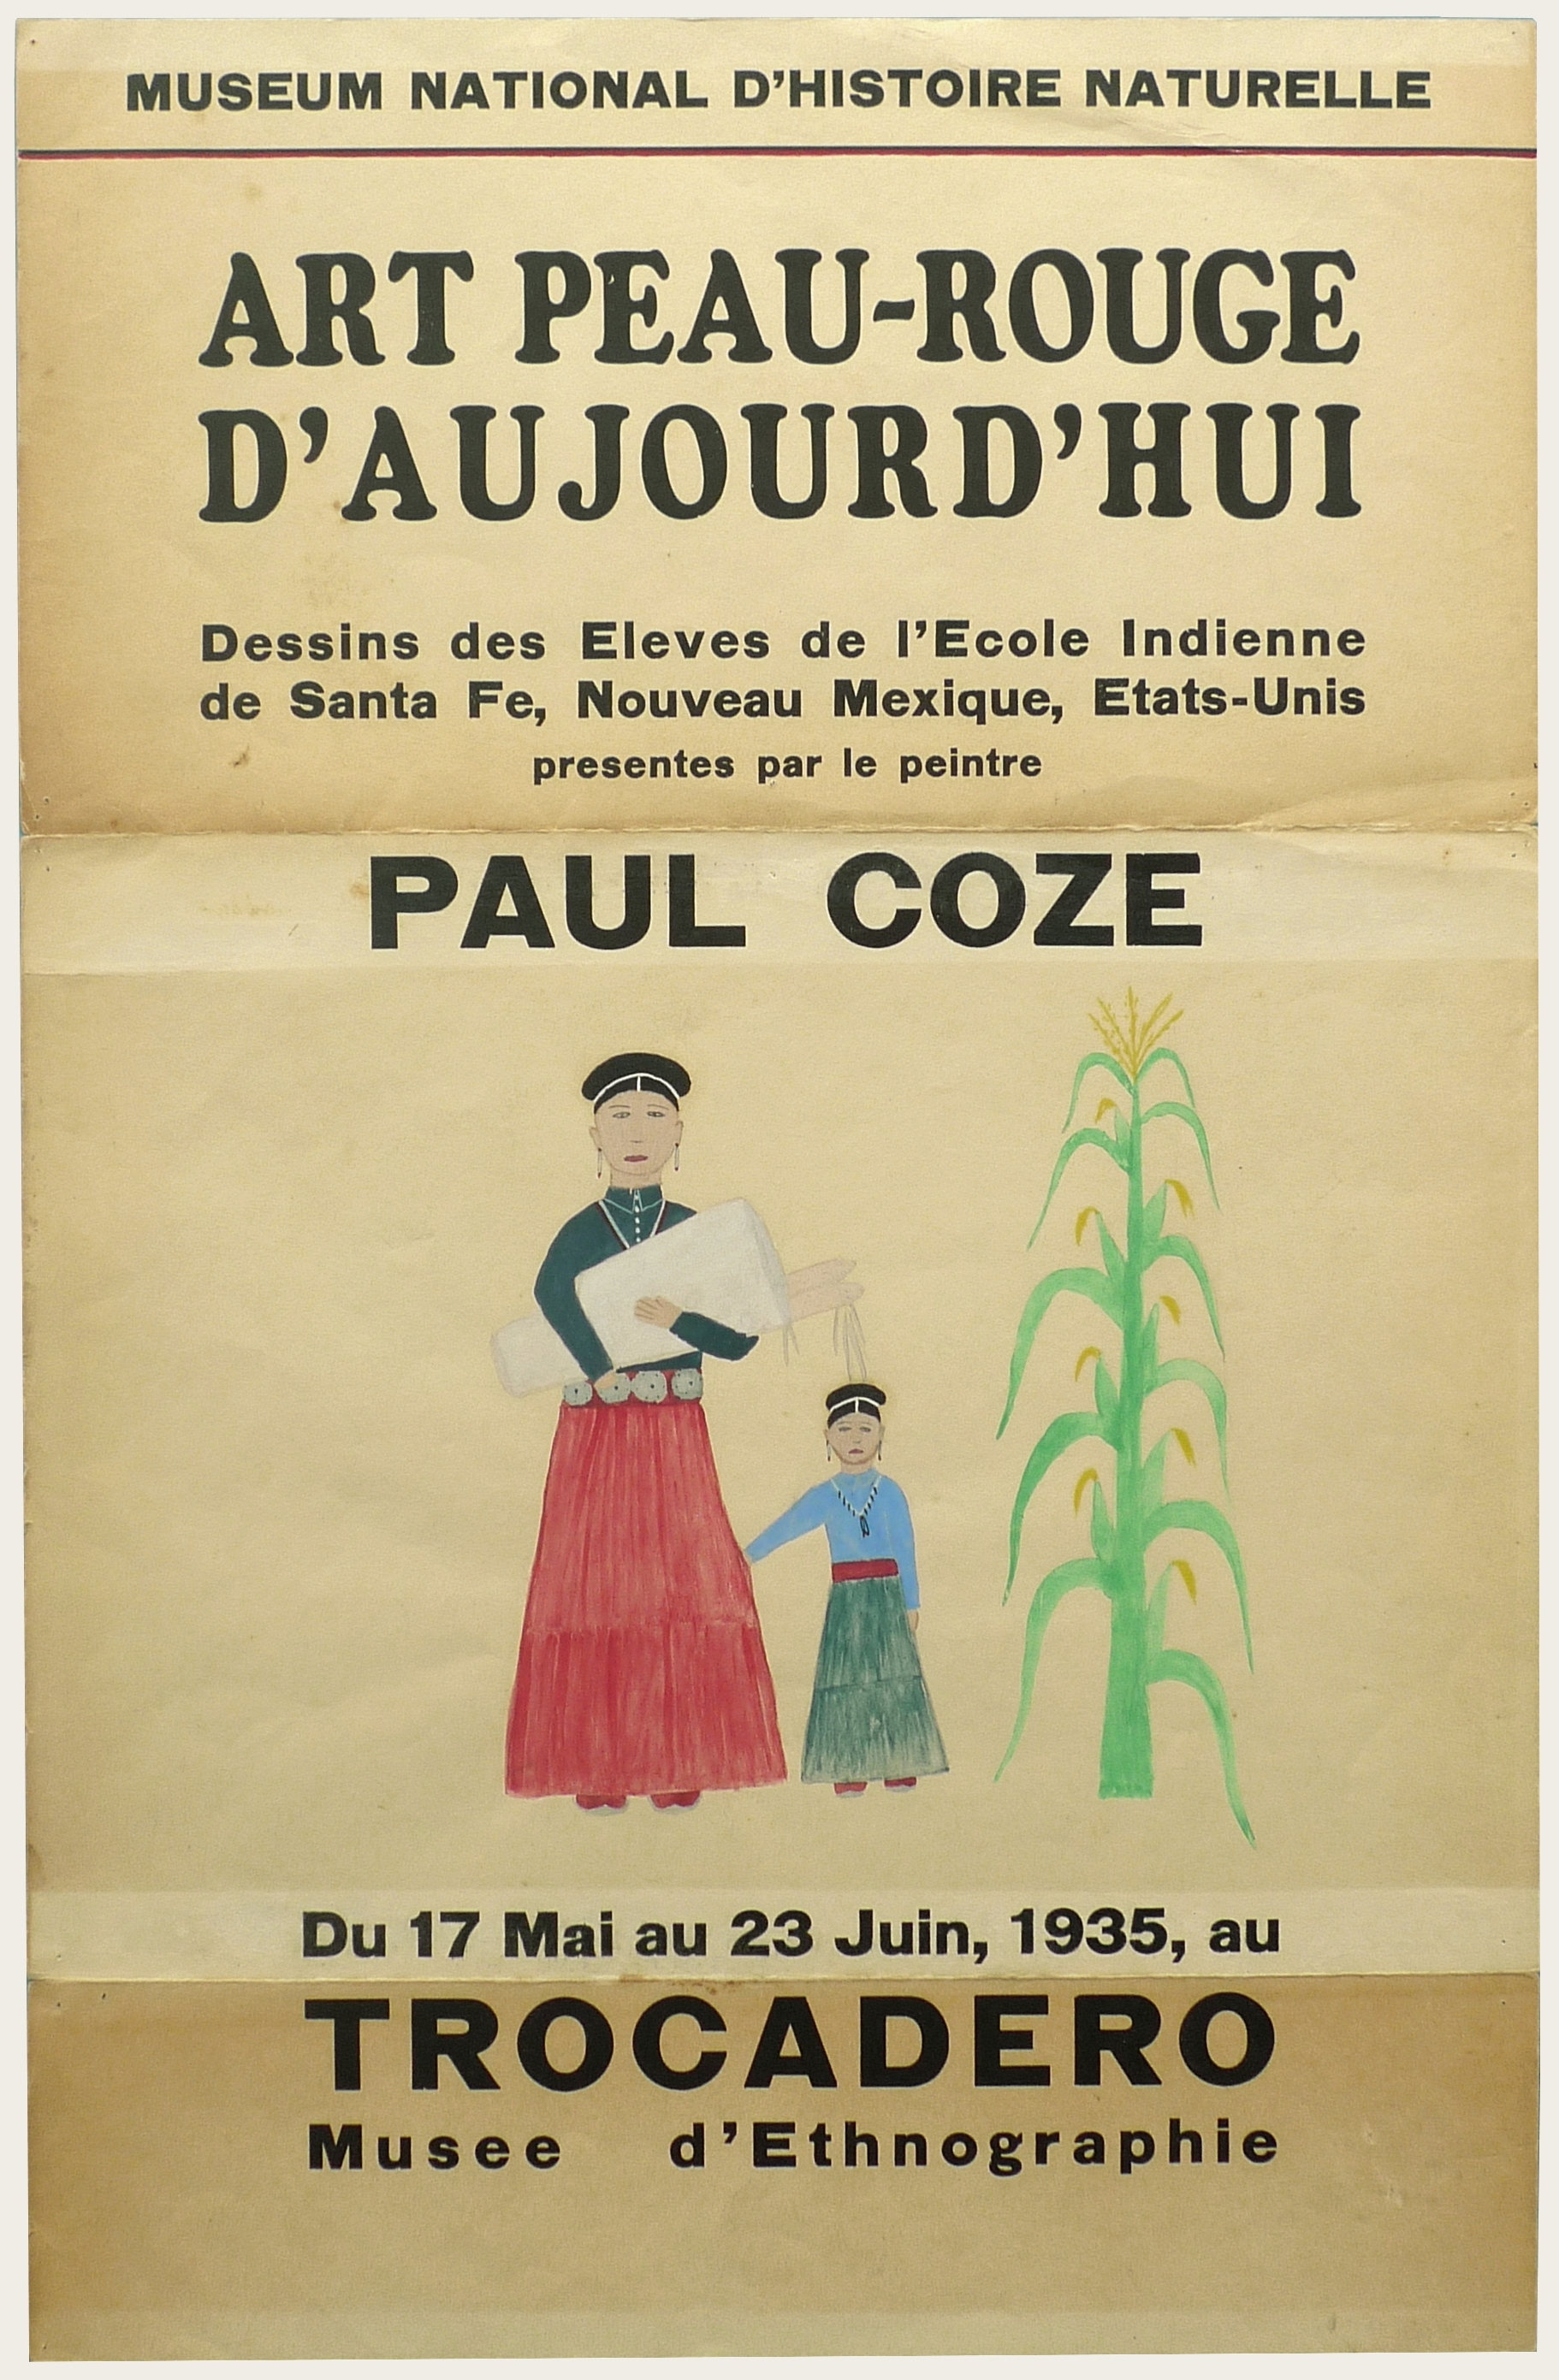 Art Exhibition Poster with painting of a tall figure clothed in a green shirt and red skirt at left, a short figure clothed in a turquoise shirt and green skirt at center, and a tall corn stalk at right. The figures face the viewer.